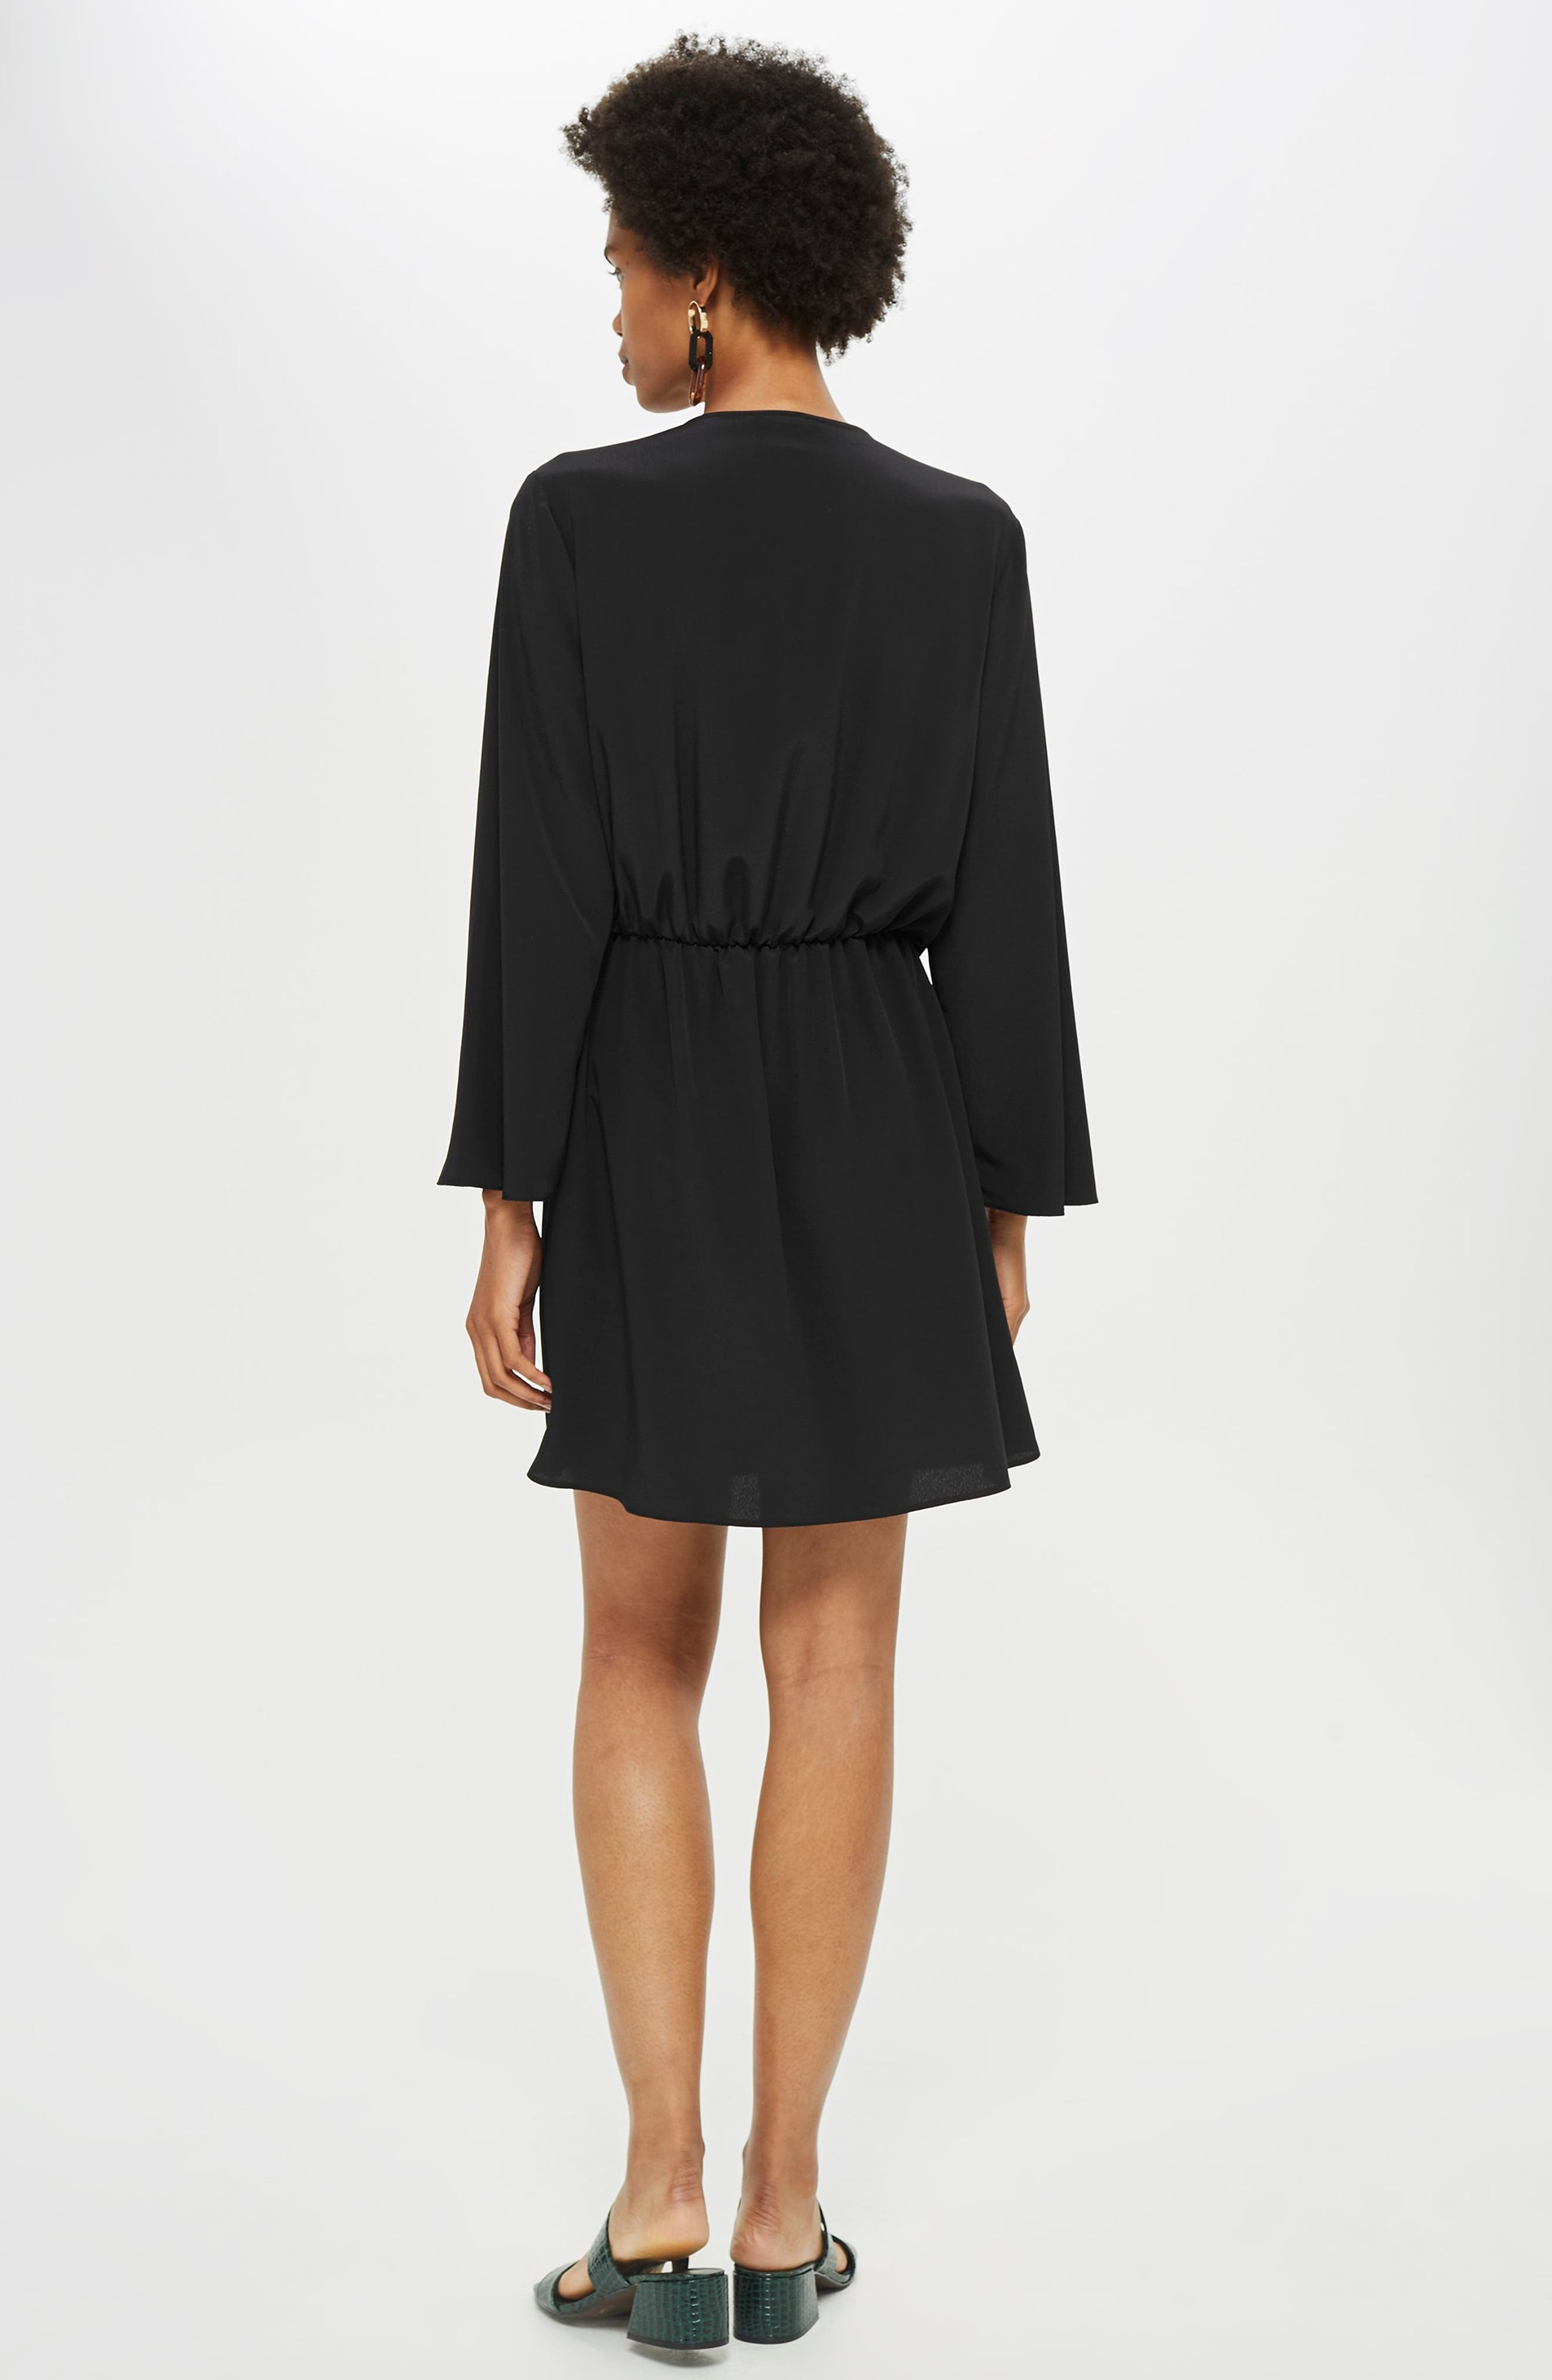 TOPSHOP, Tiffany Knot Minidress, Alternate thumbnail 5, color, BLACK